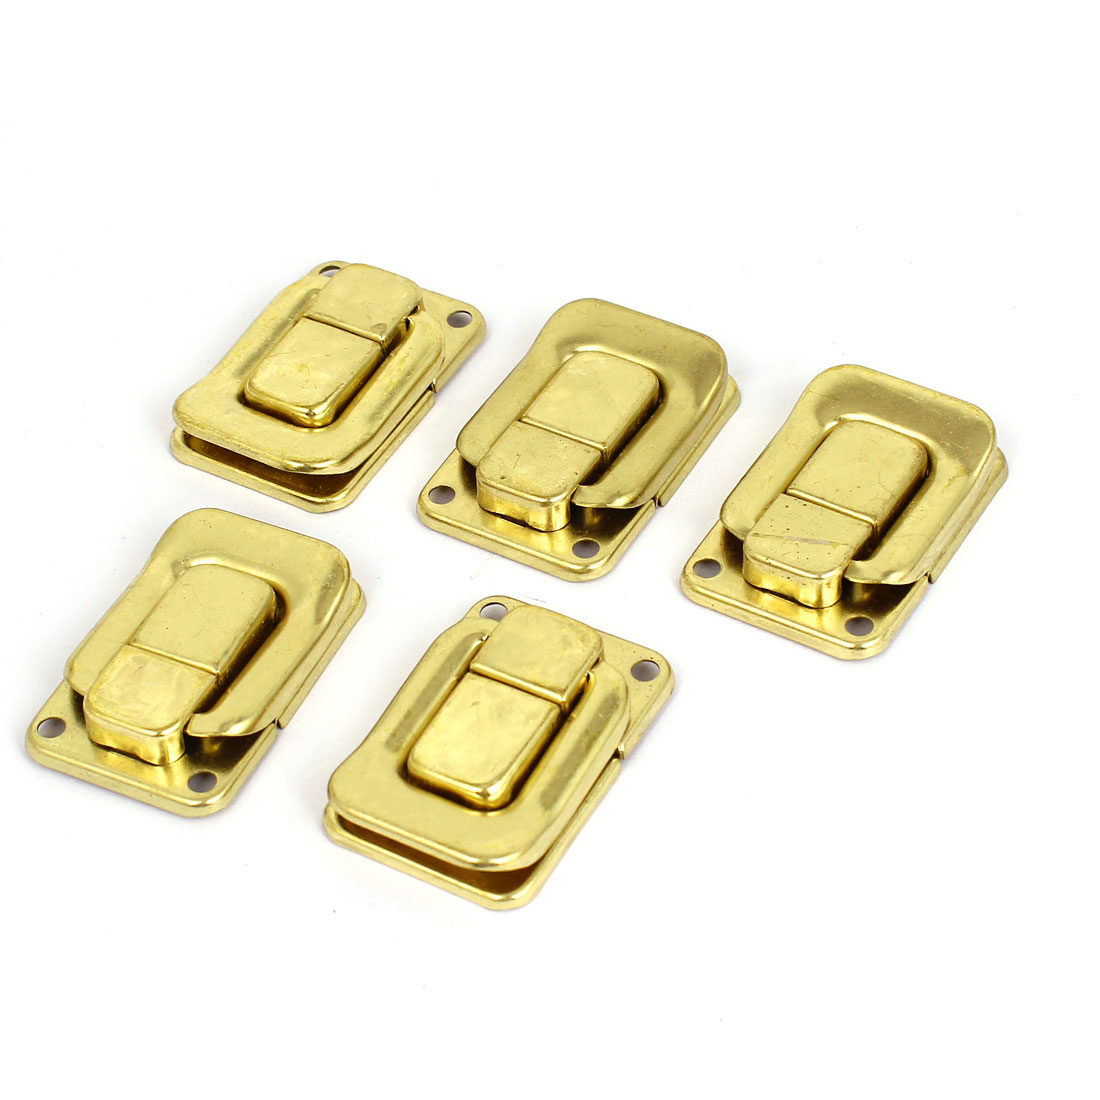 5 Pcs Gold Tone Metal Toggle Latch Catch Chest Box Case Suitcase Clasps